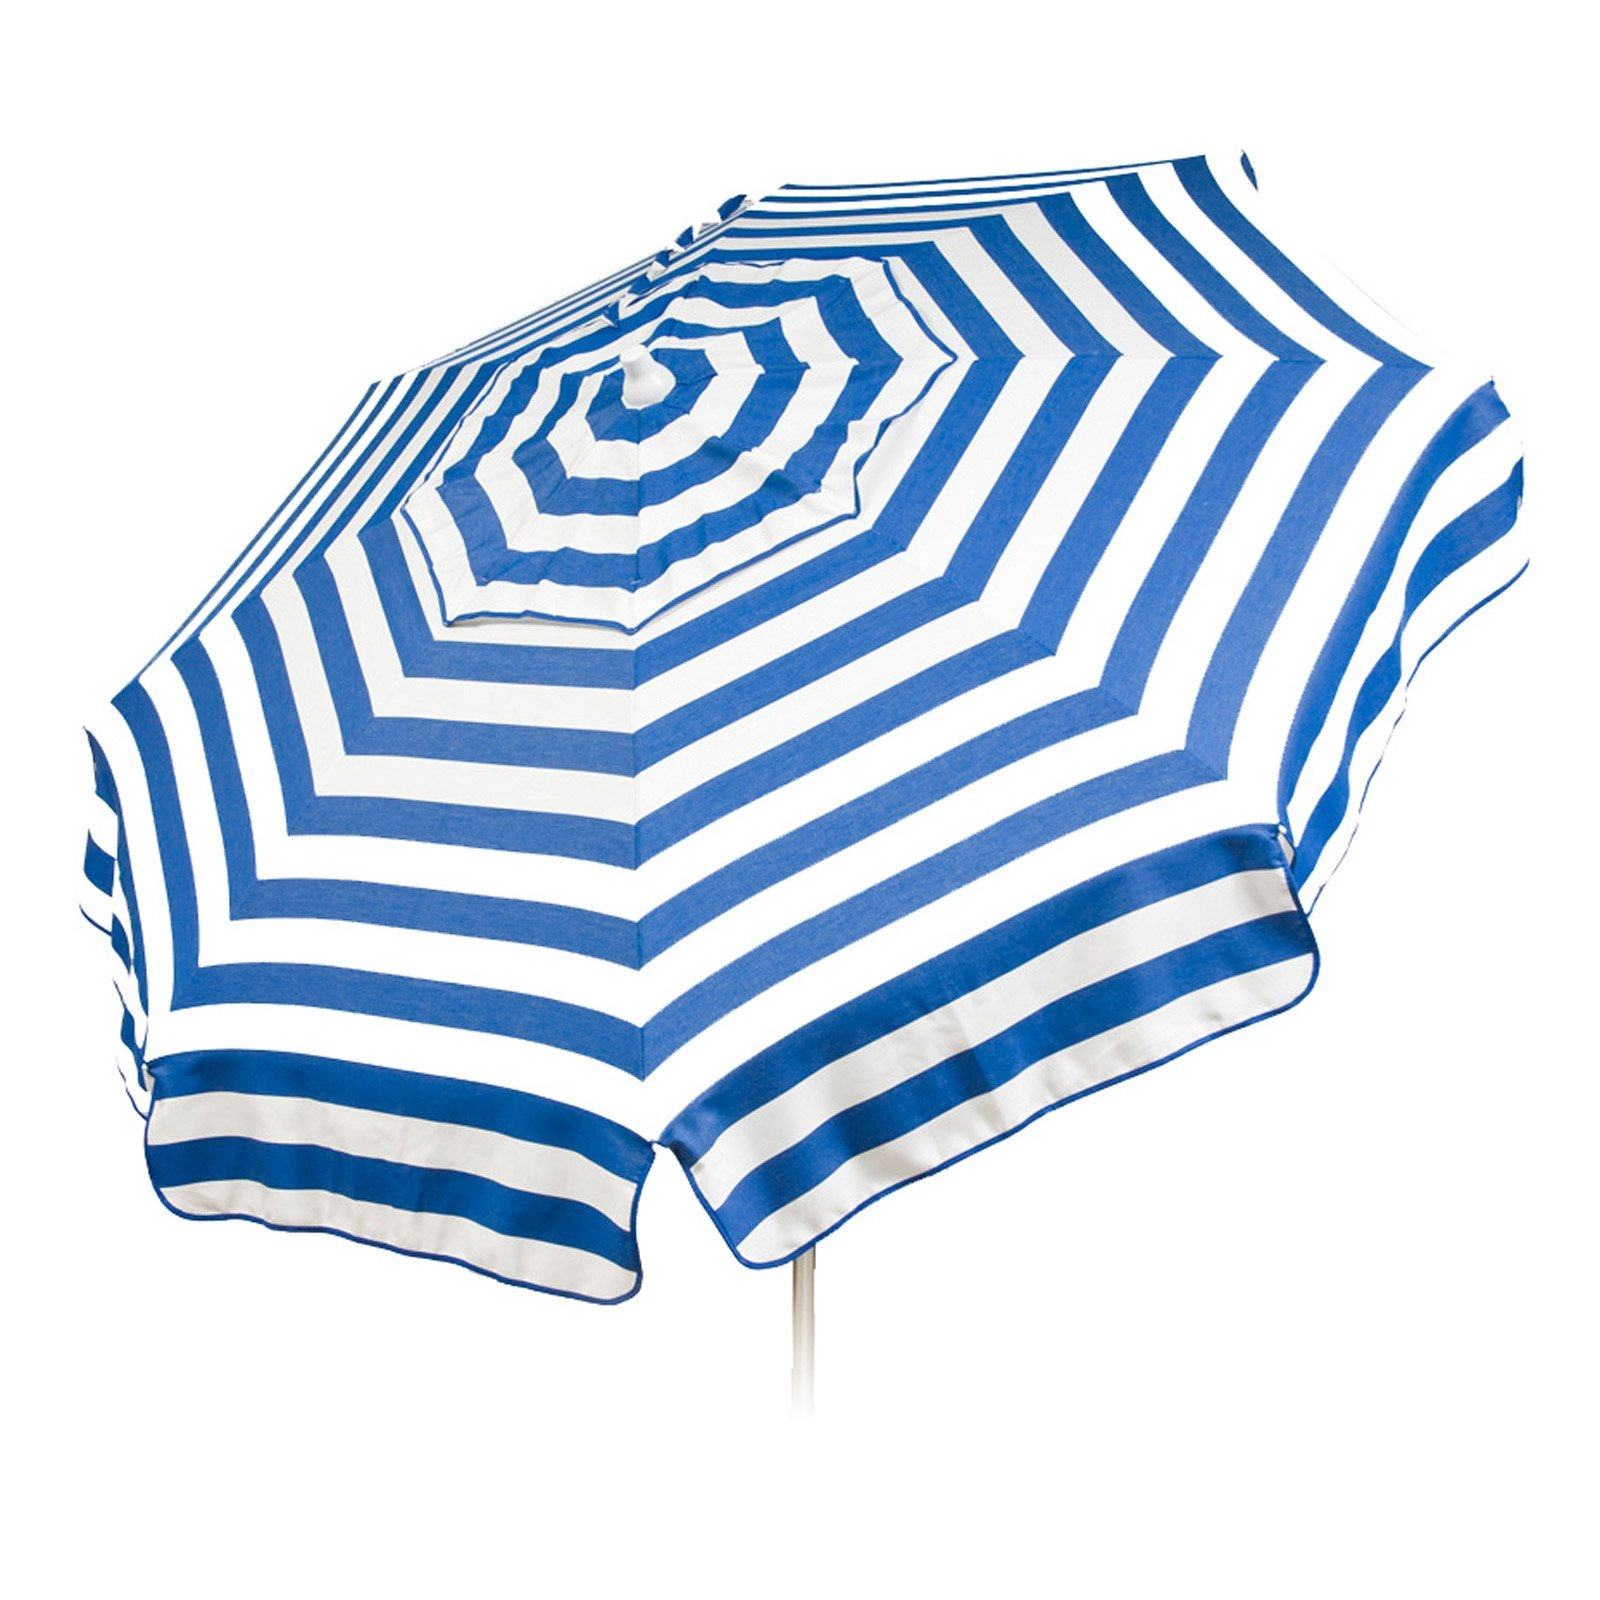 6ft Italian Market Tilt Umbrella Home Patio Sun Canopy Blue Stripe - Beach Pole